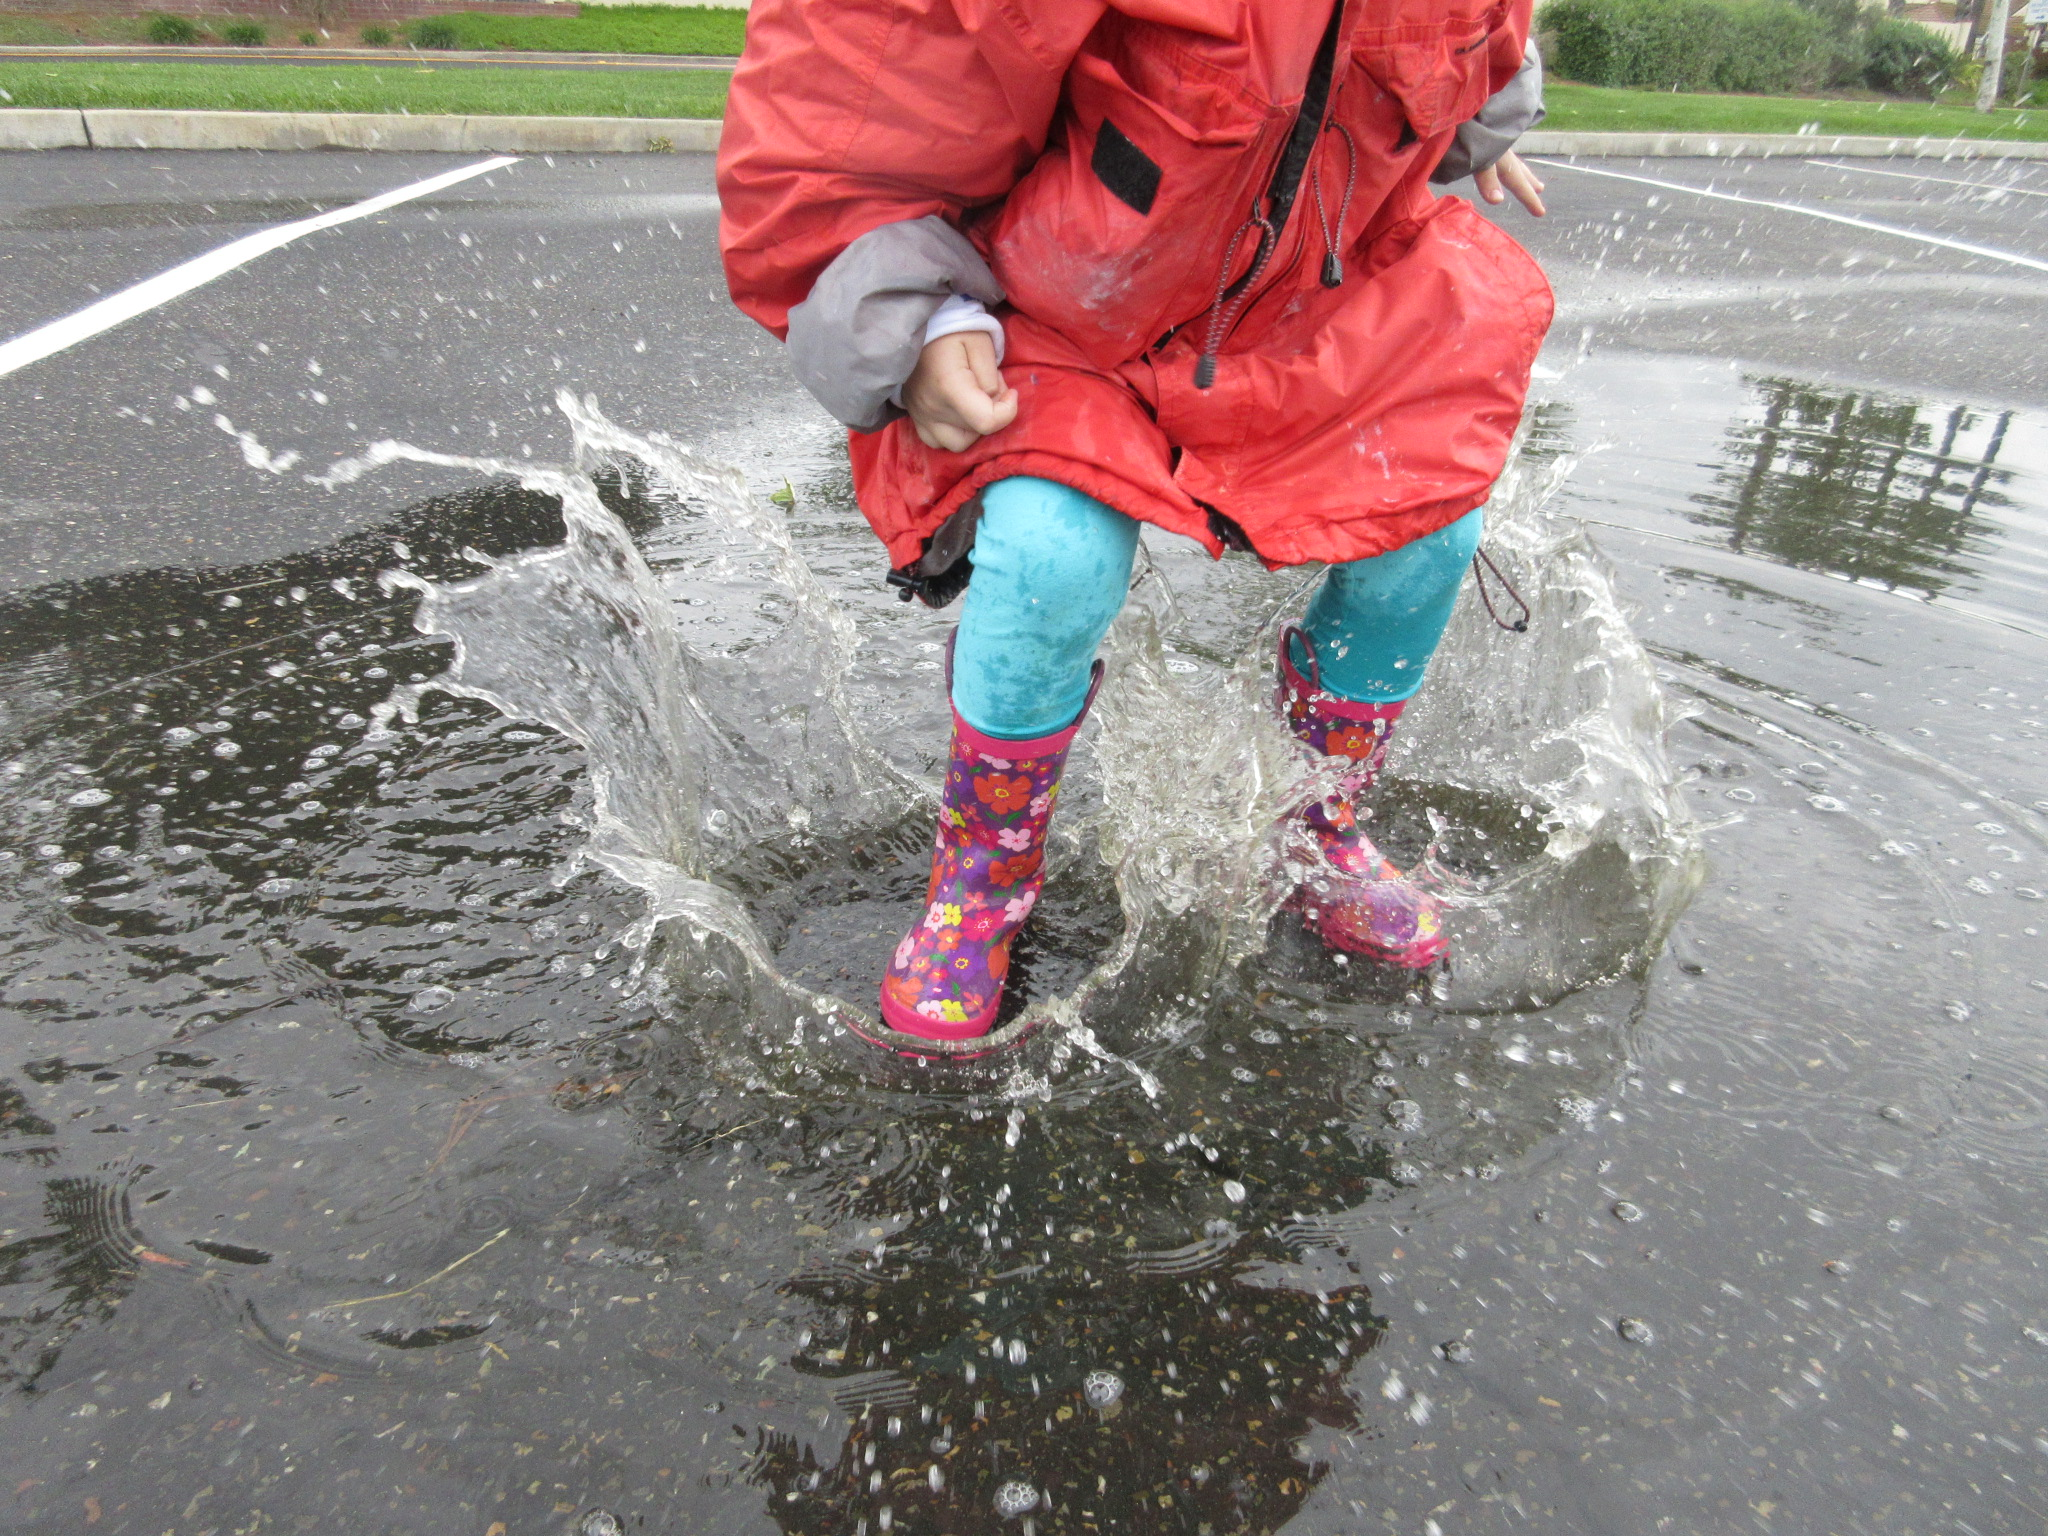 Simple Seasons Puddles & Ponds Jumping in a rain puddle